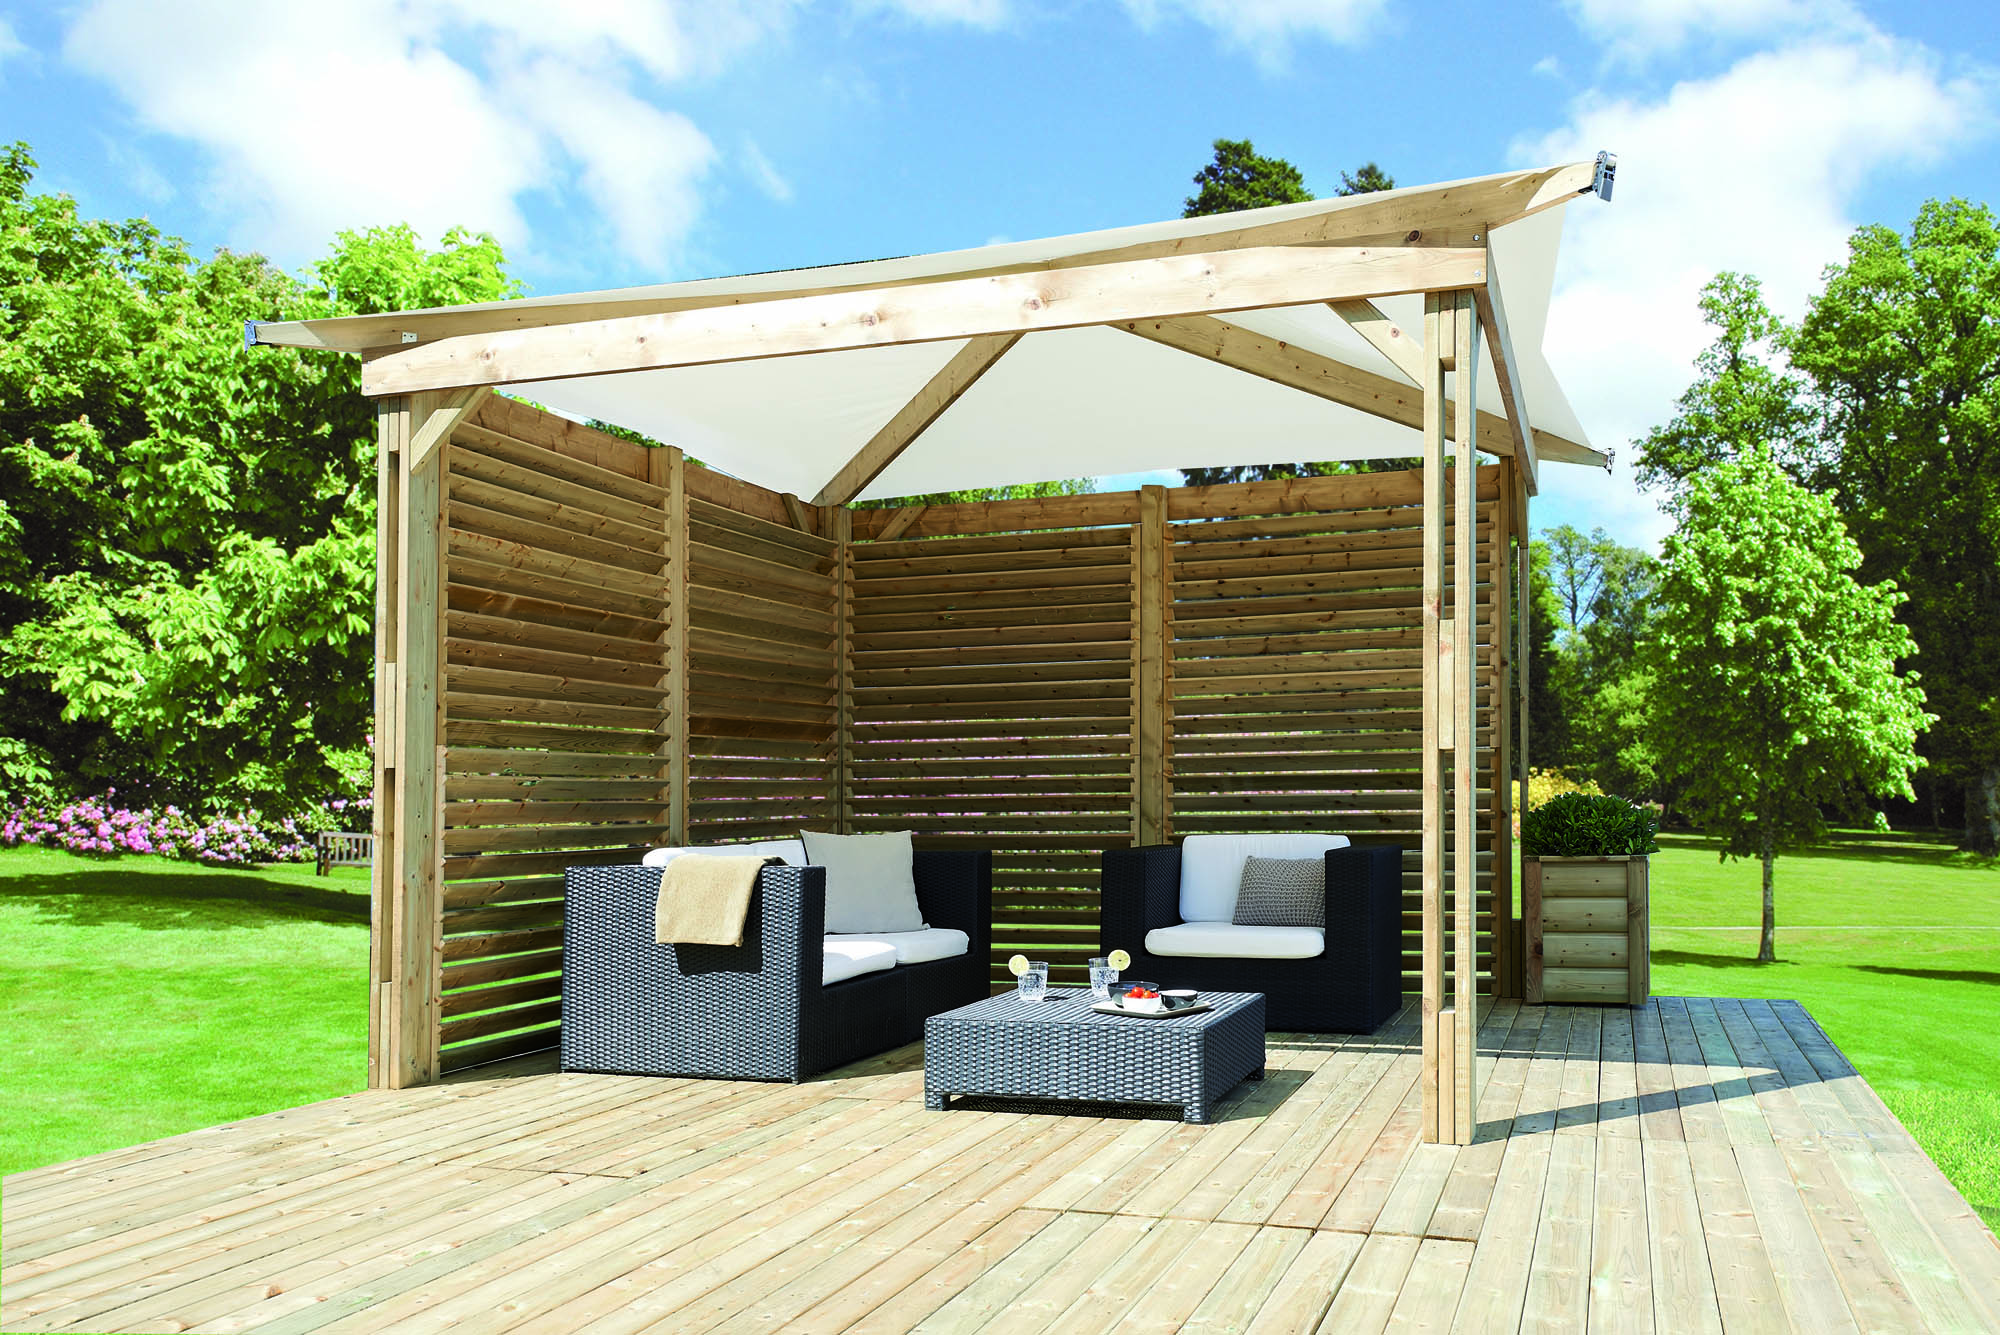 Le kiosque acheter couverture terrasse made in france for Couverture pour terrasse